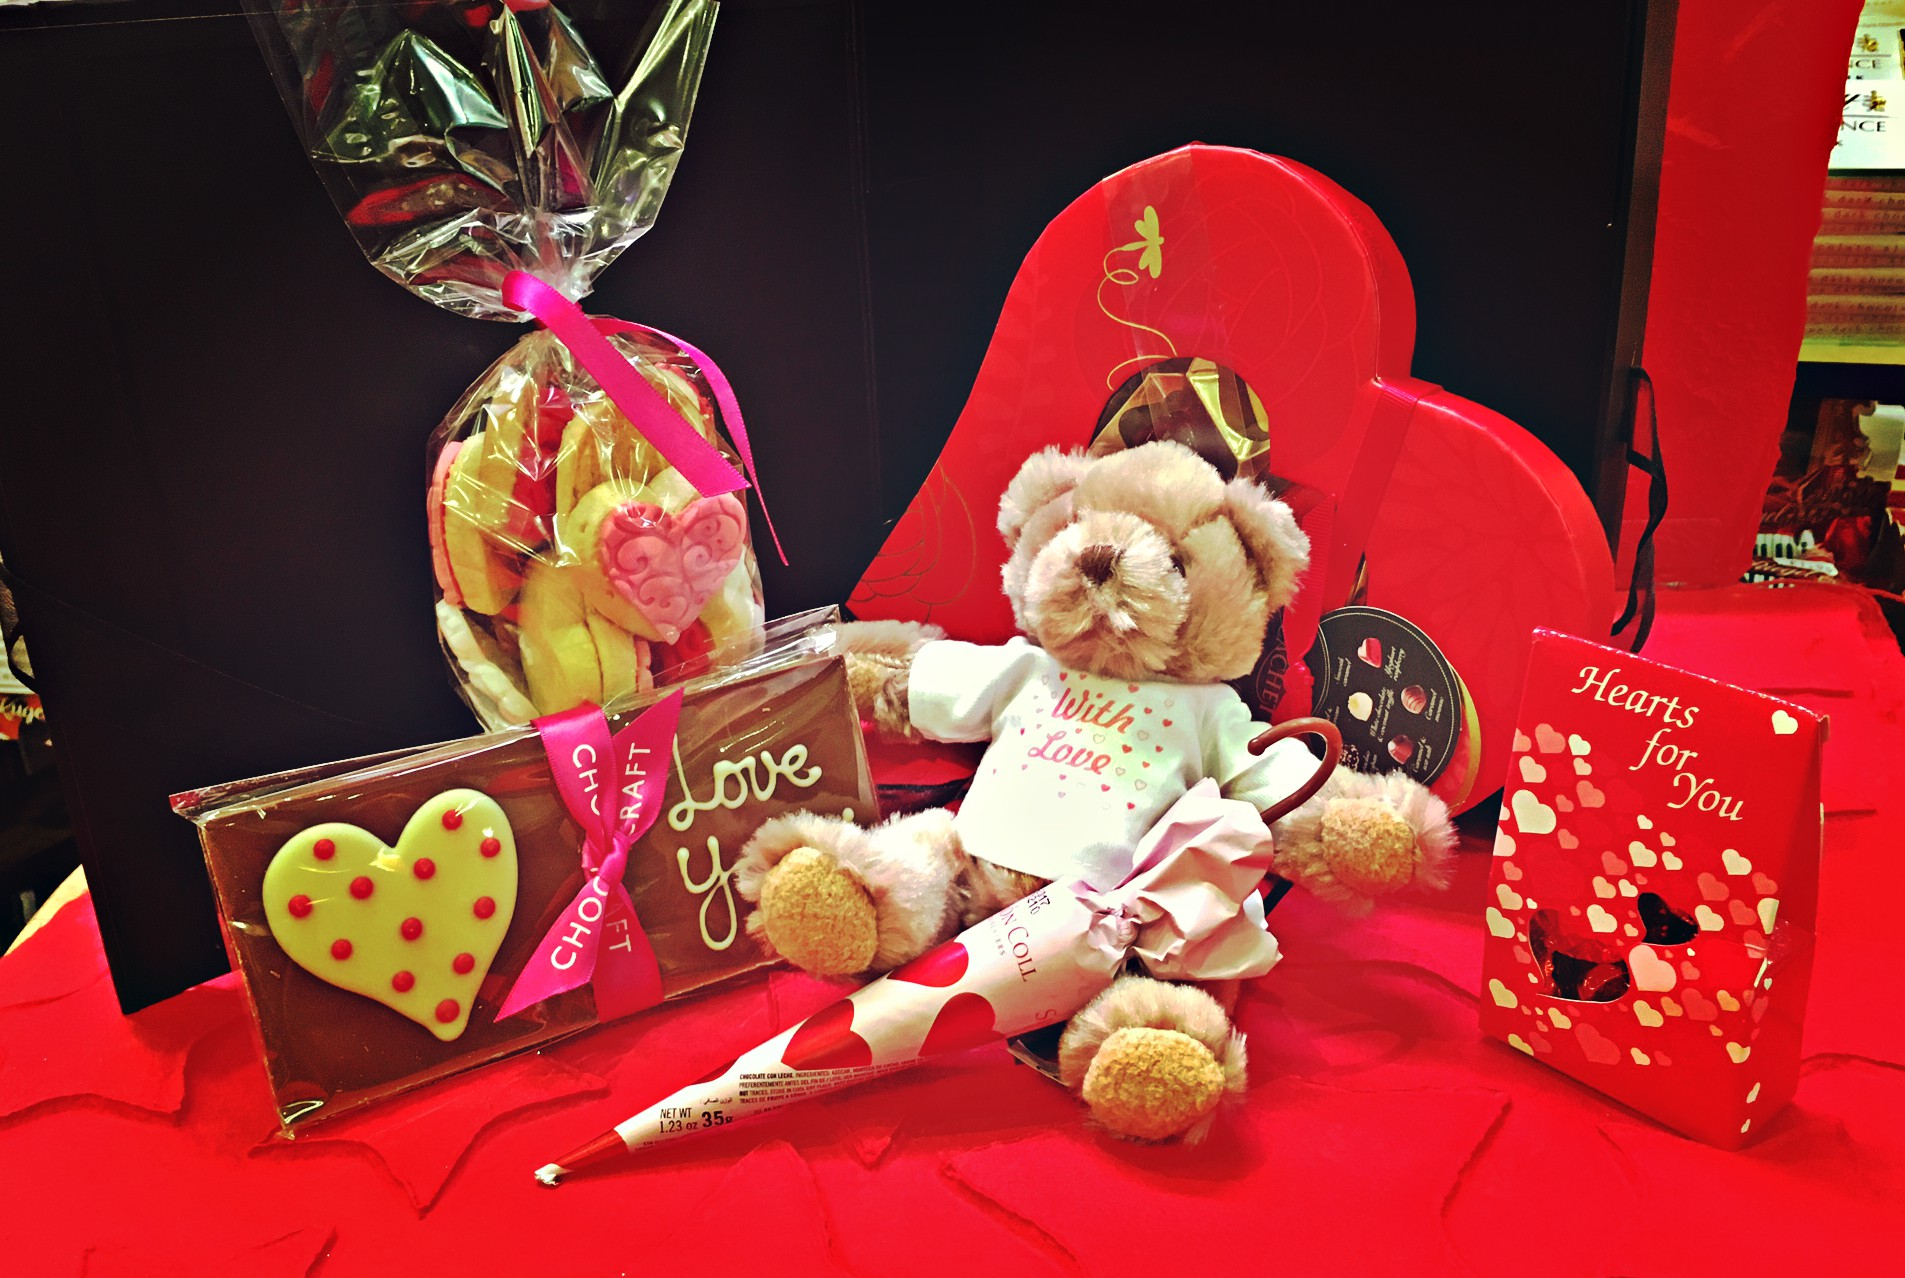 The Quintessential Love Hamper